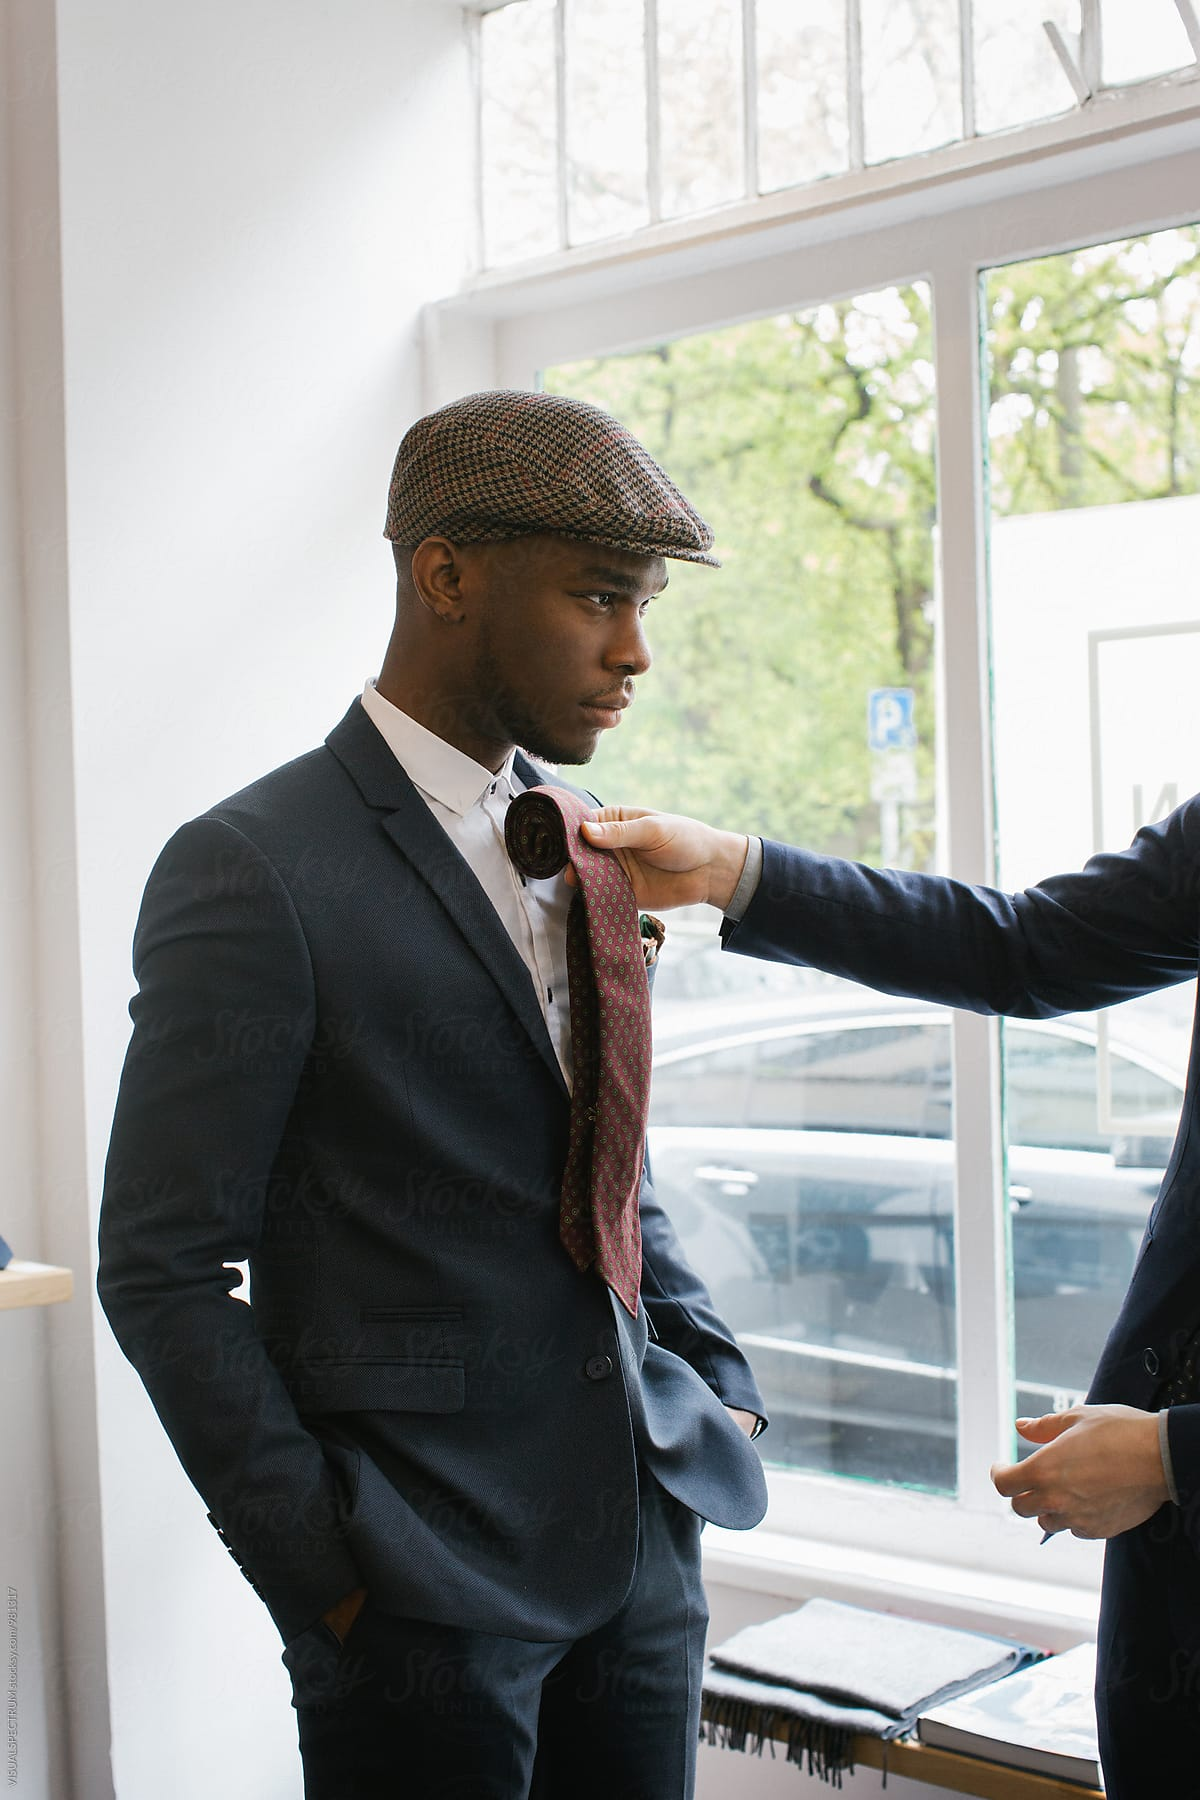 Men S Fashion Portrait Of Stylish Young Black Man Trying On Tie